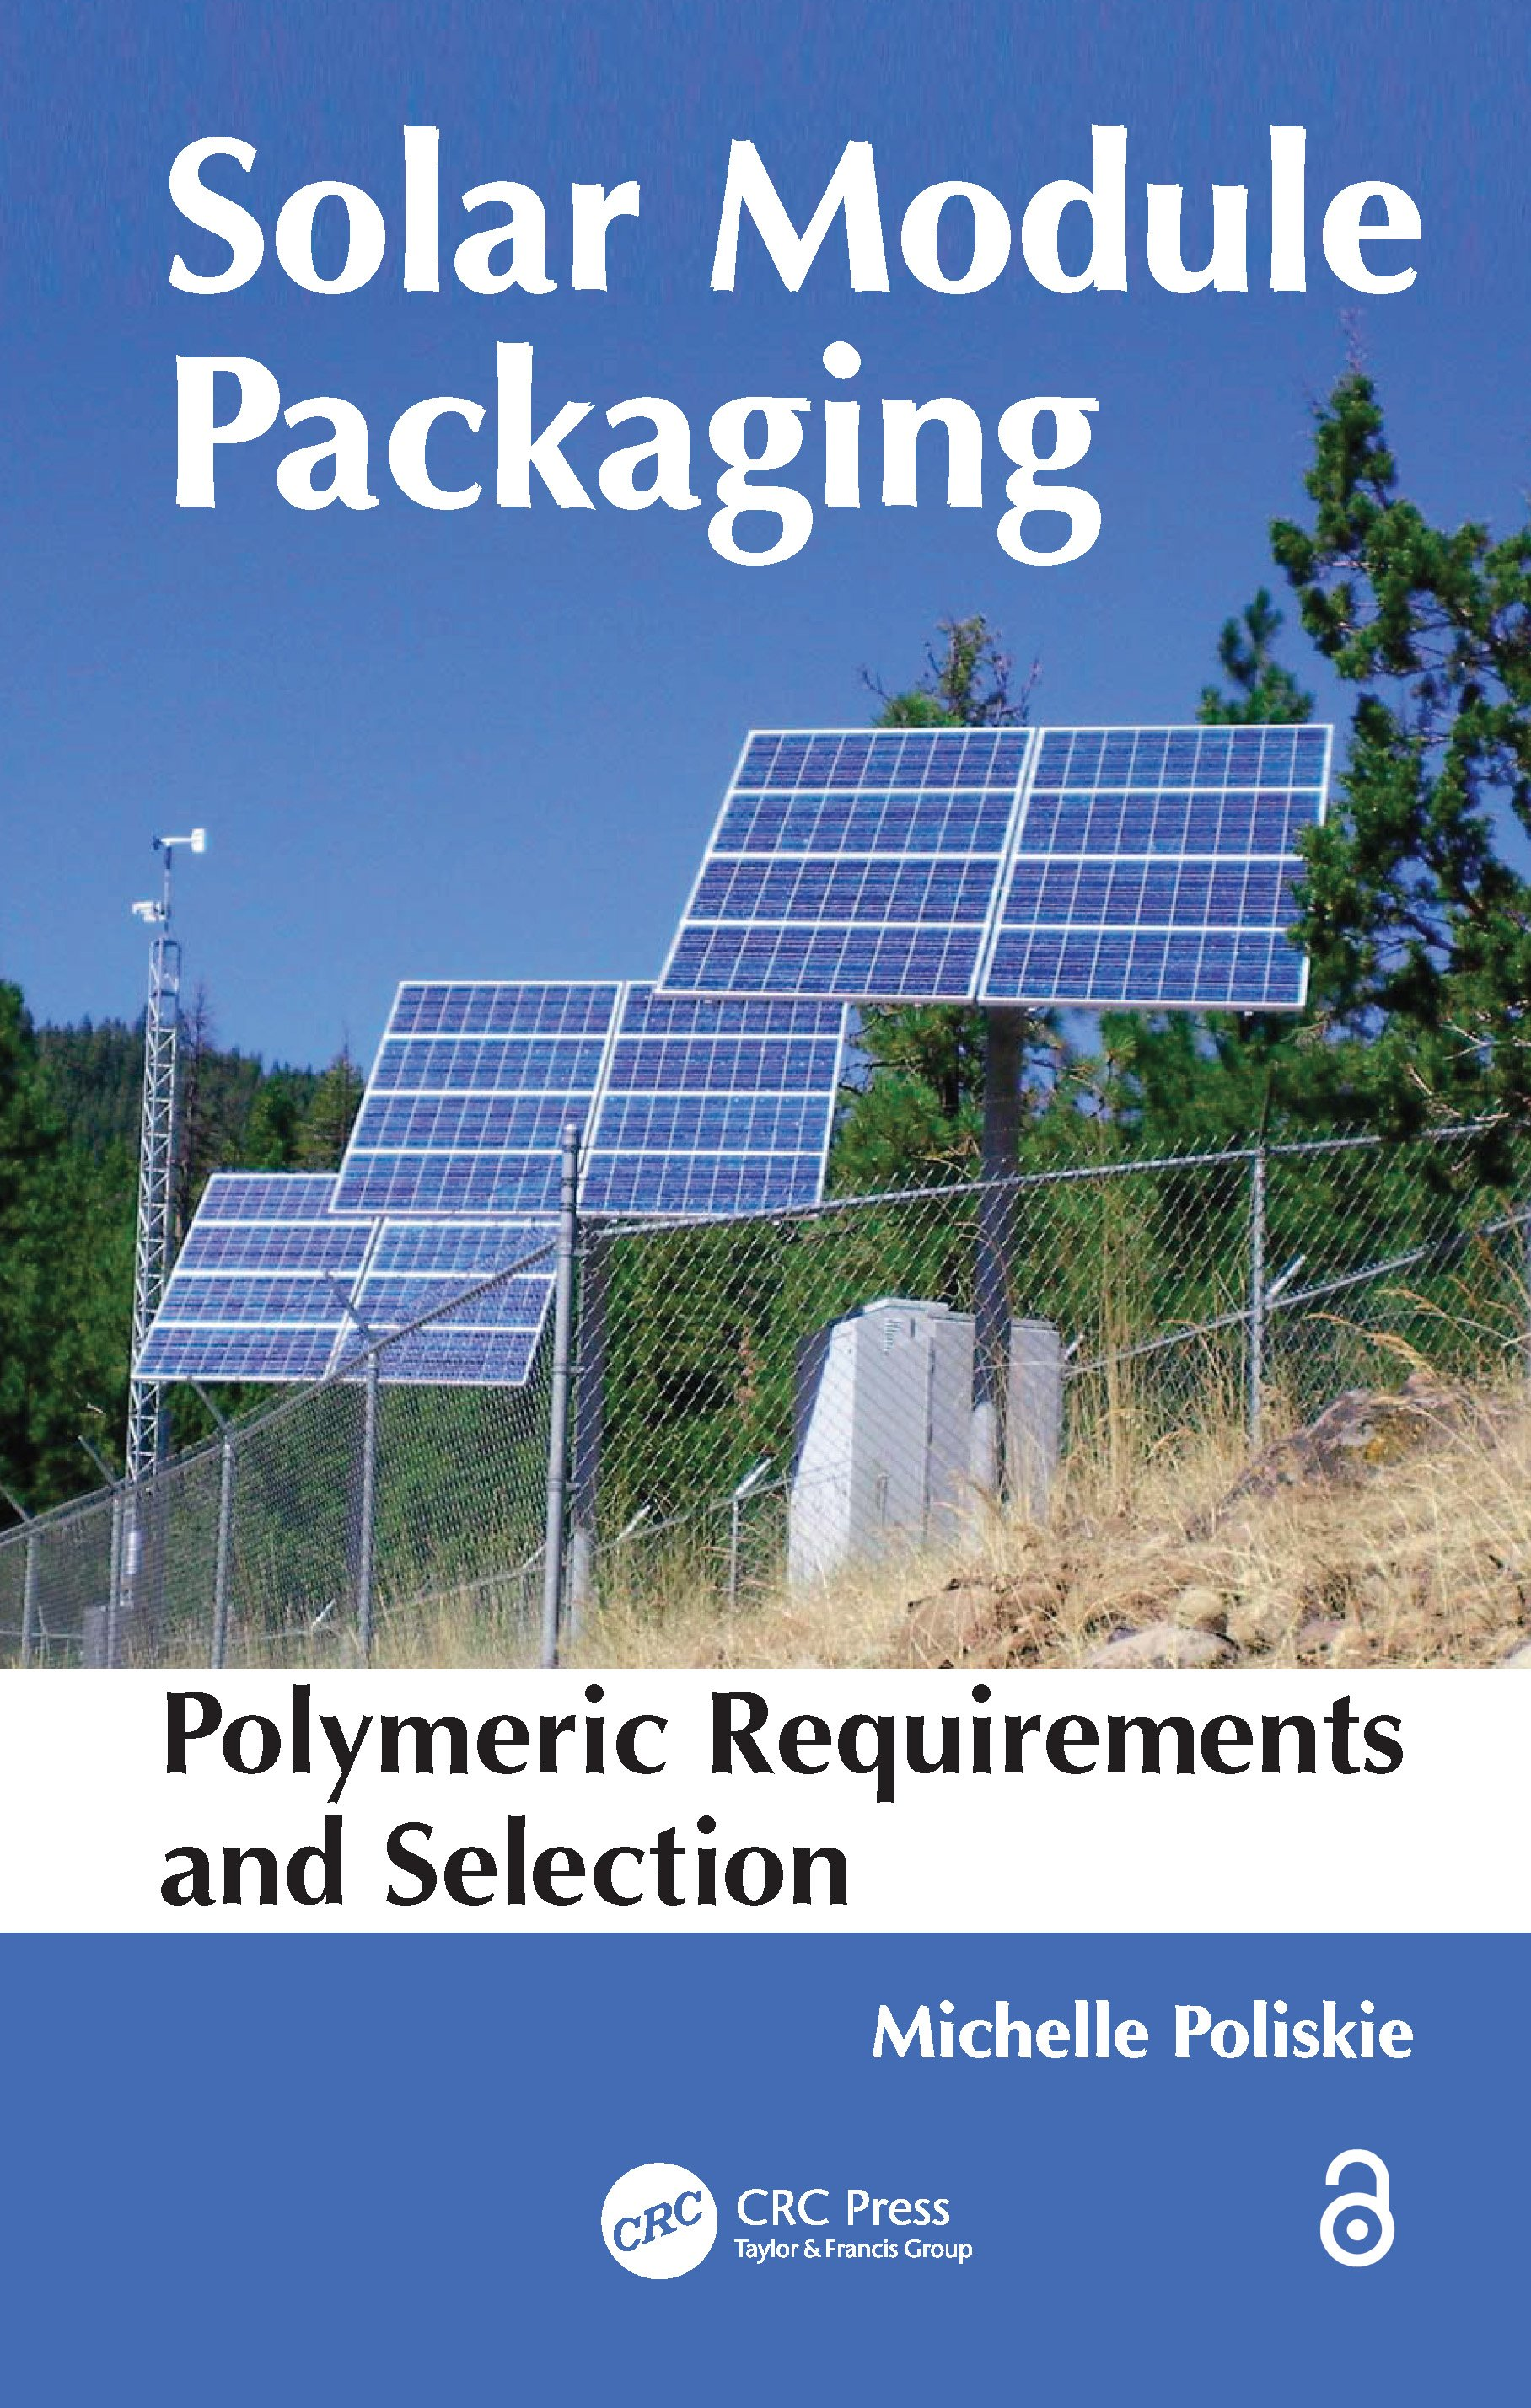 Solar Module Packaging